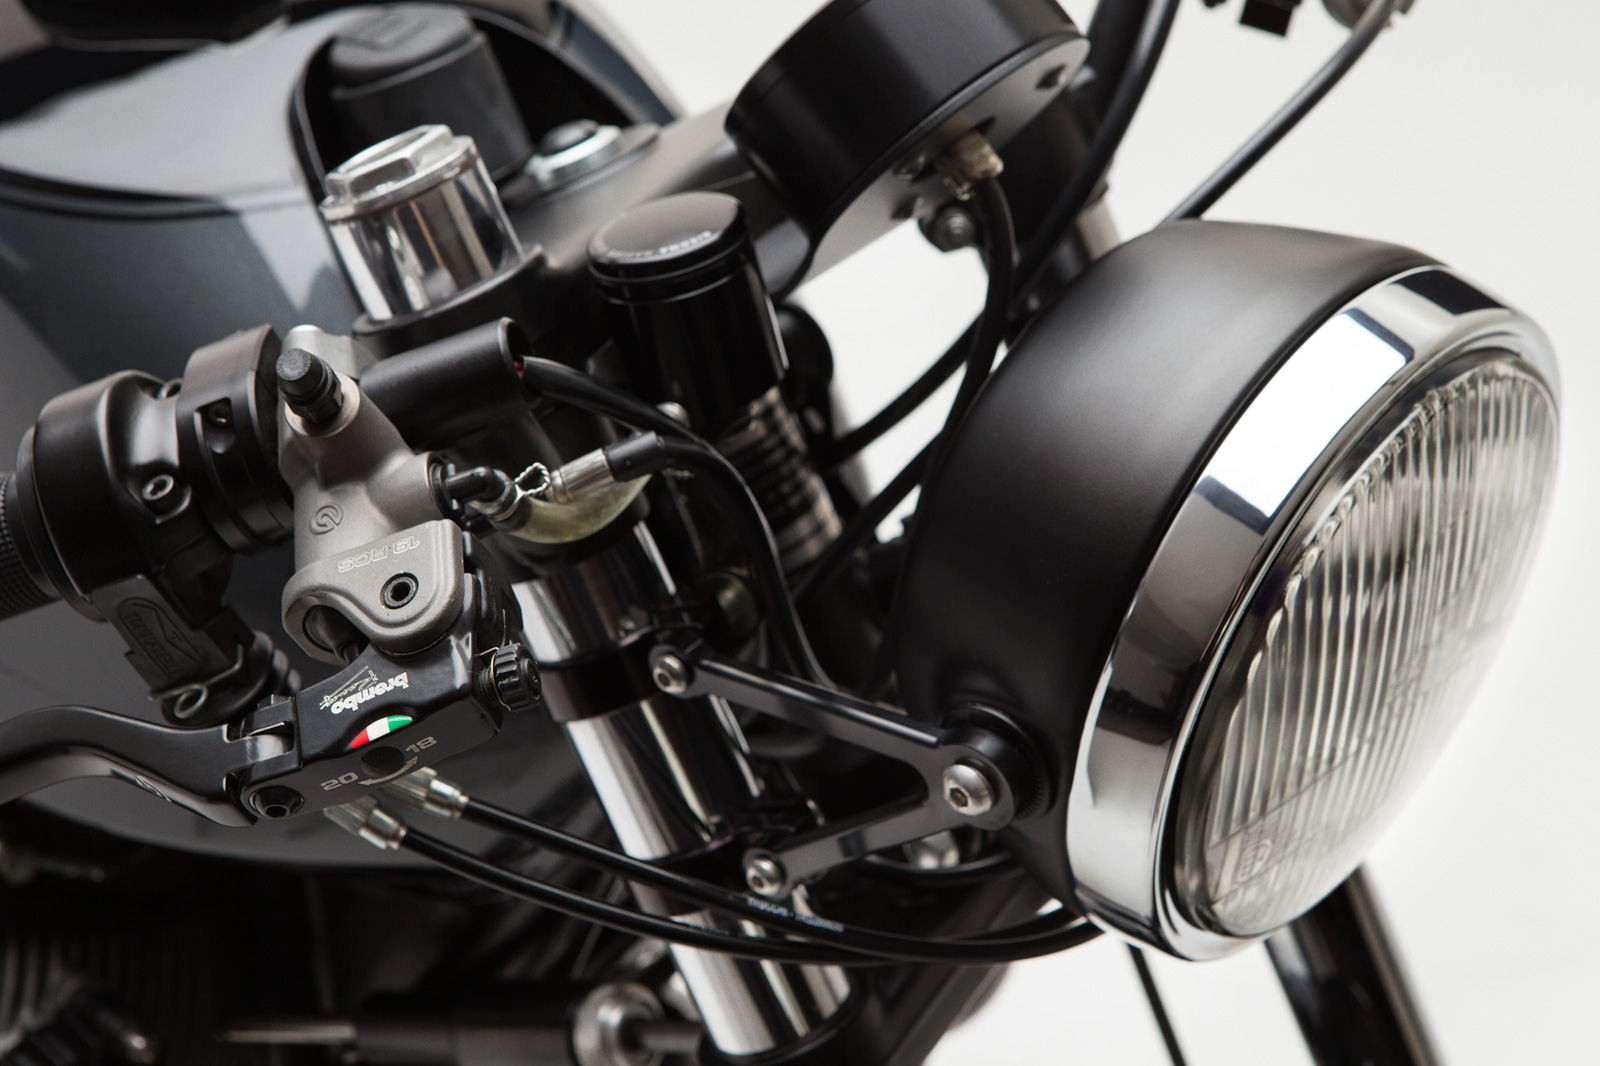 Moto Borgotaro Custom Moto Guzzi Lemans headlight